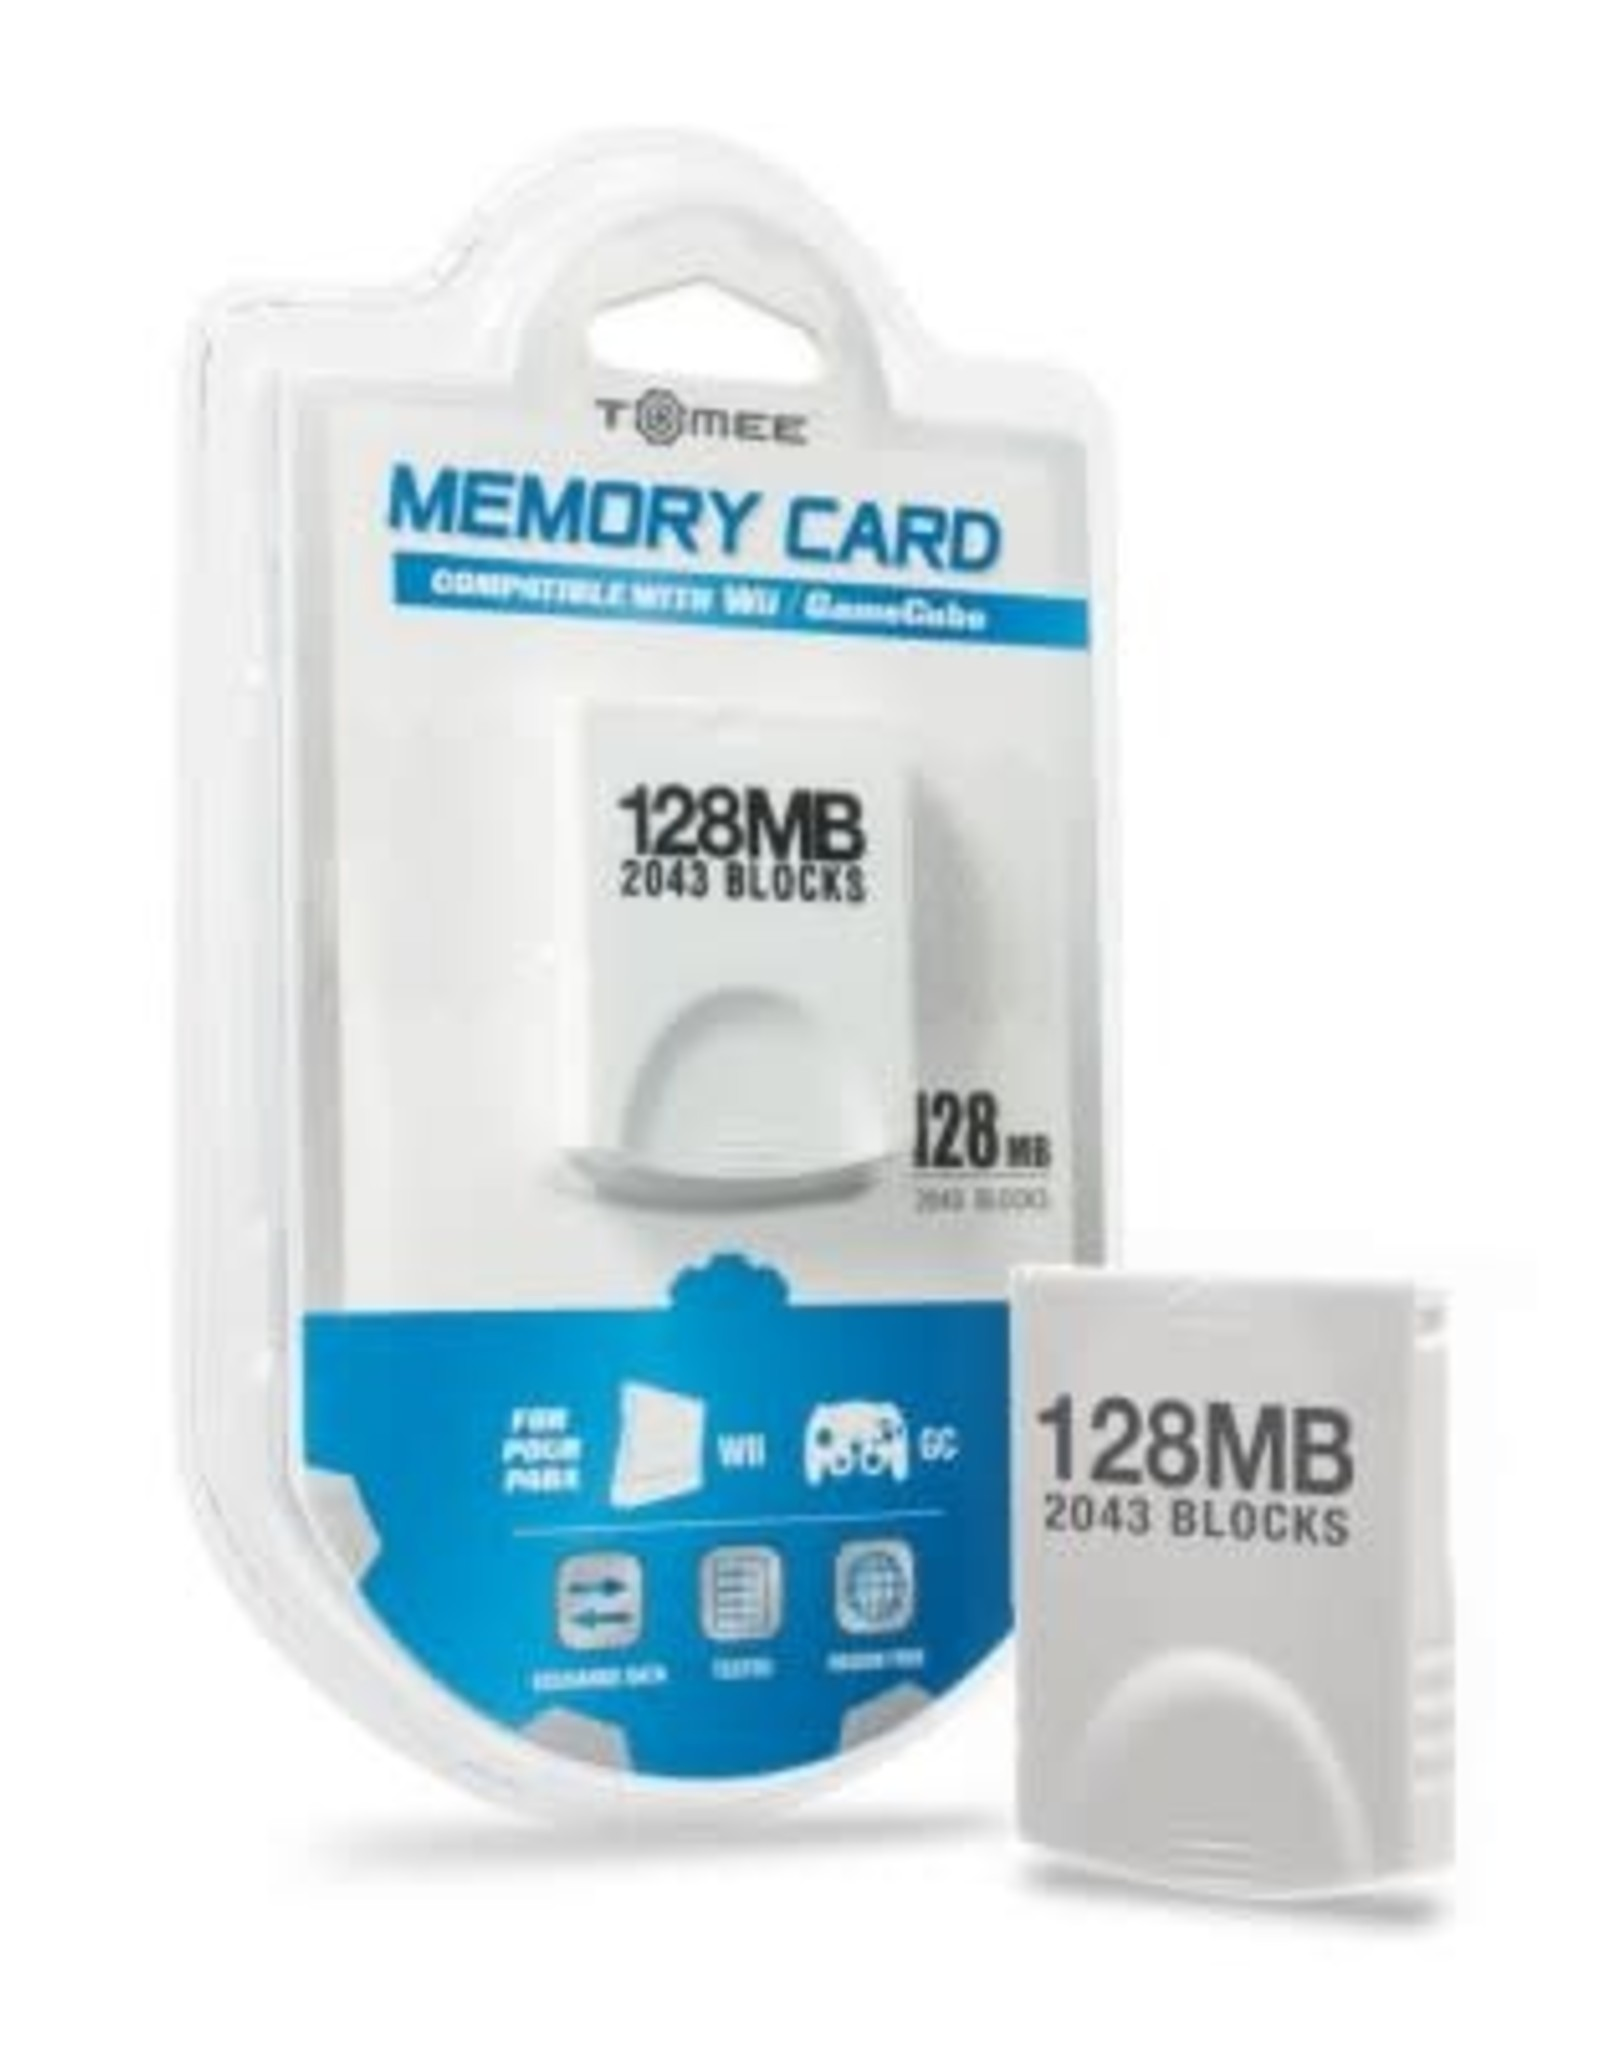 Tomee 128MB Memory Card For Wii®/ GameCube®